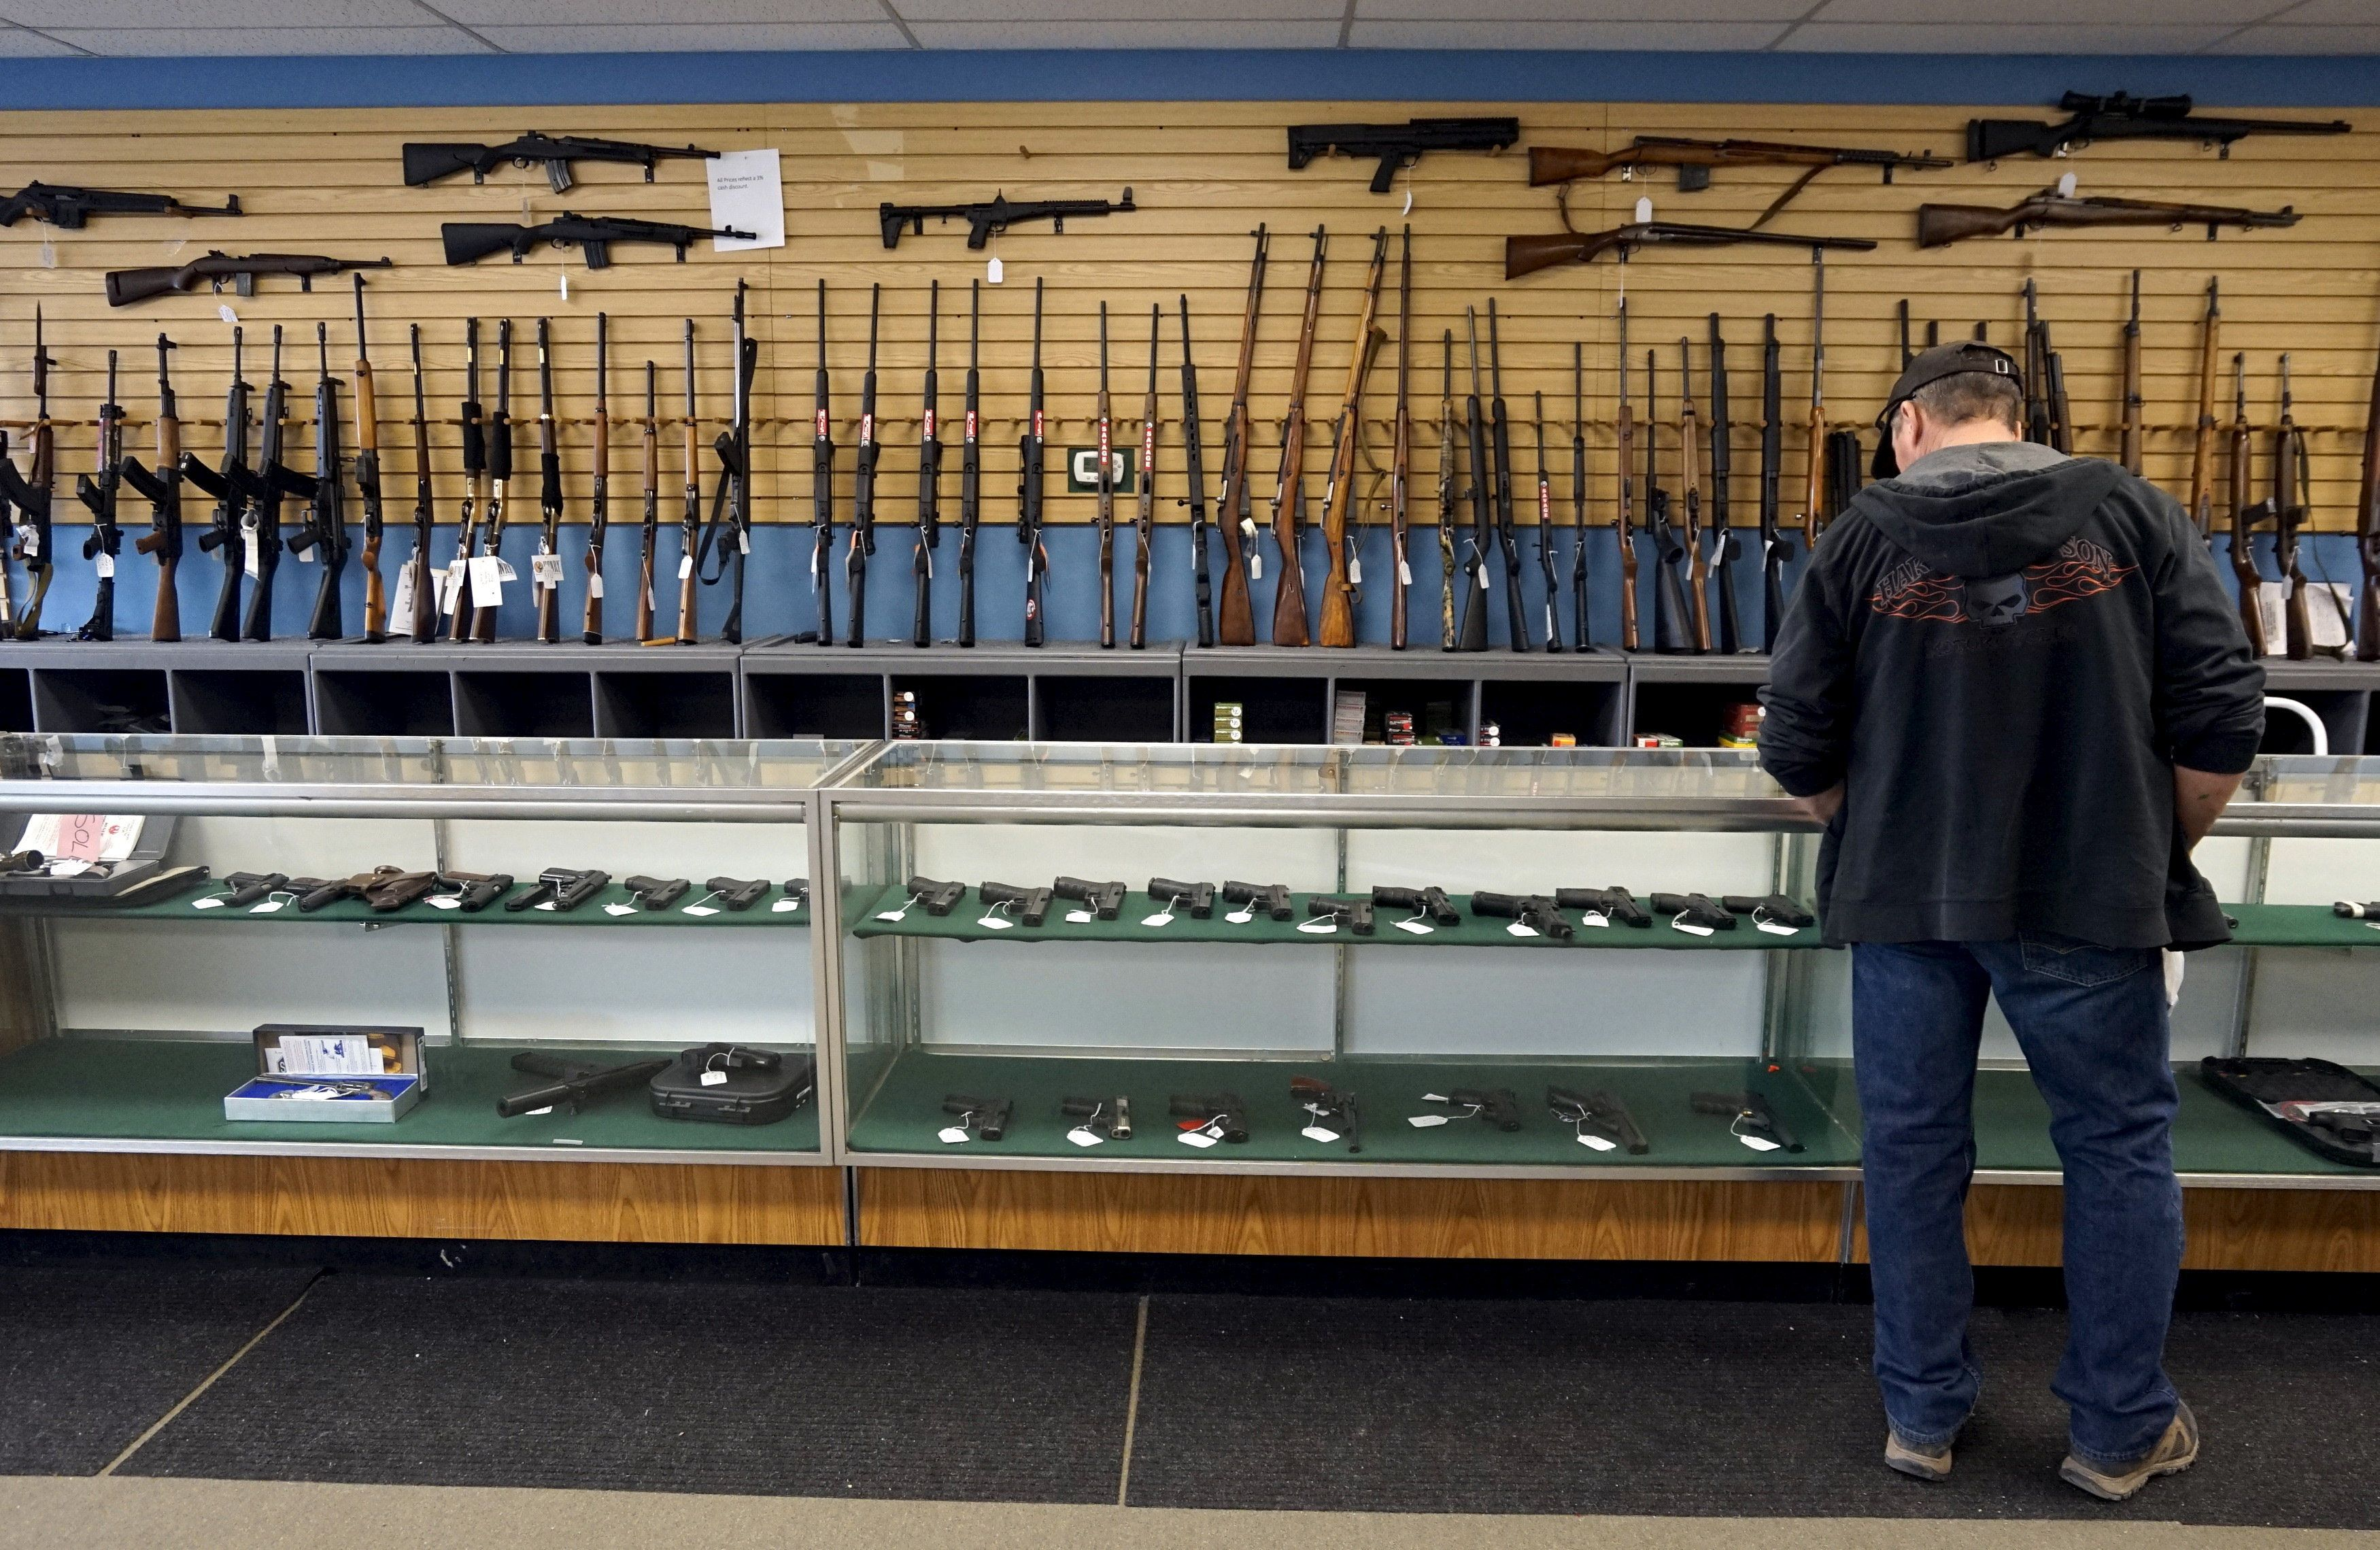 A customer looks over weapons for sale at the Pony Express Firearms shop in Parker, Colorado December 7, 2015. Many Americans are stocking up on weapons after the country's worst mass shooting in three years. Gun retailers are reporting surging sales, with customers saying they want to keep handguns and rifles at hand for self-defense in the event of another attack. REUTERS/Rick Wilking